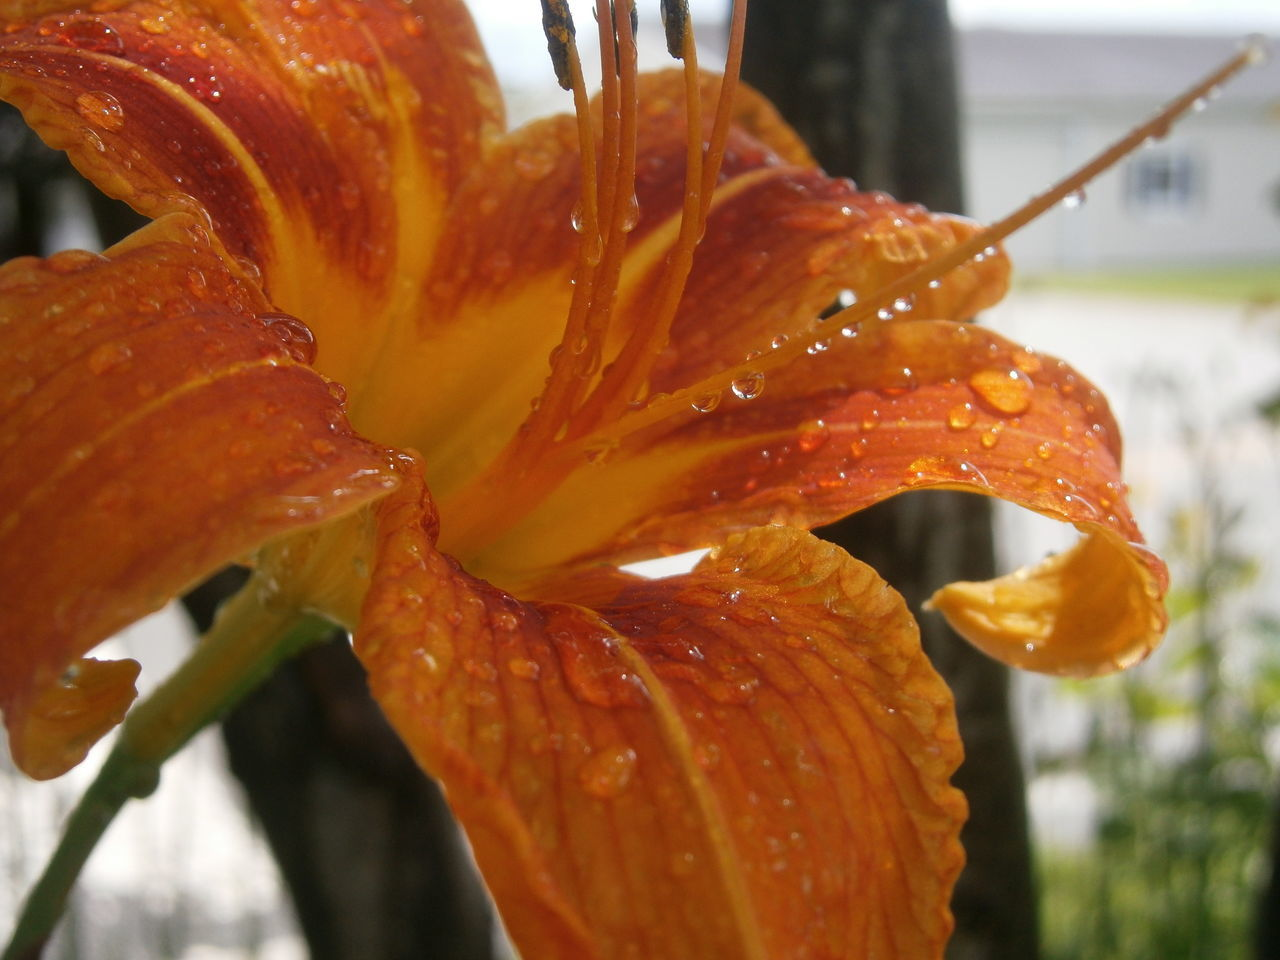 Close-Up Of Wet Orange Day Lily Blooming Outdoors